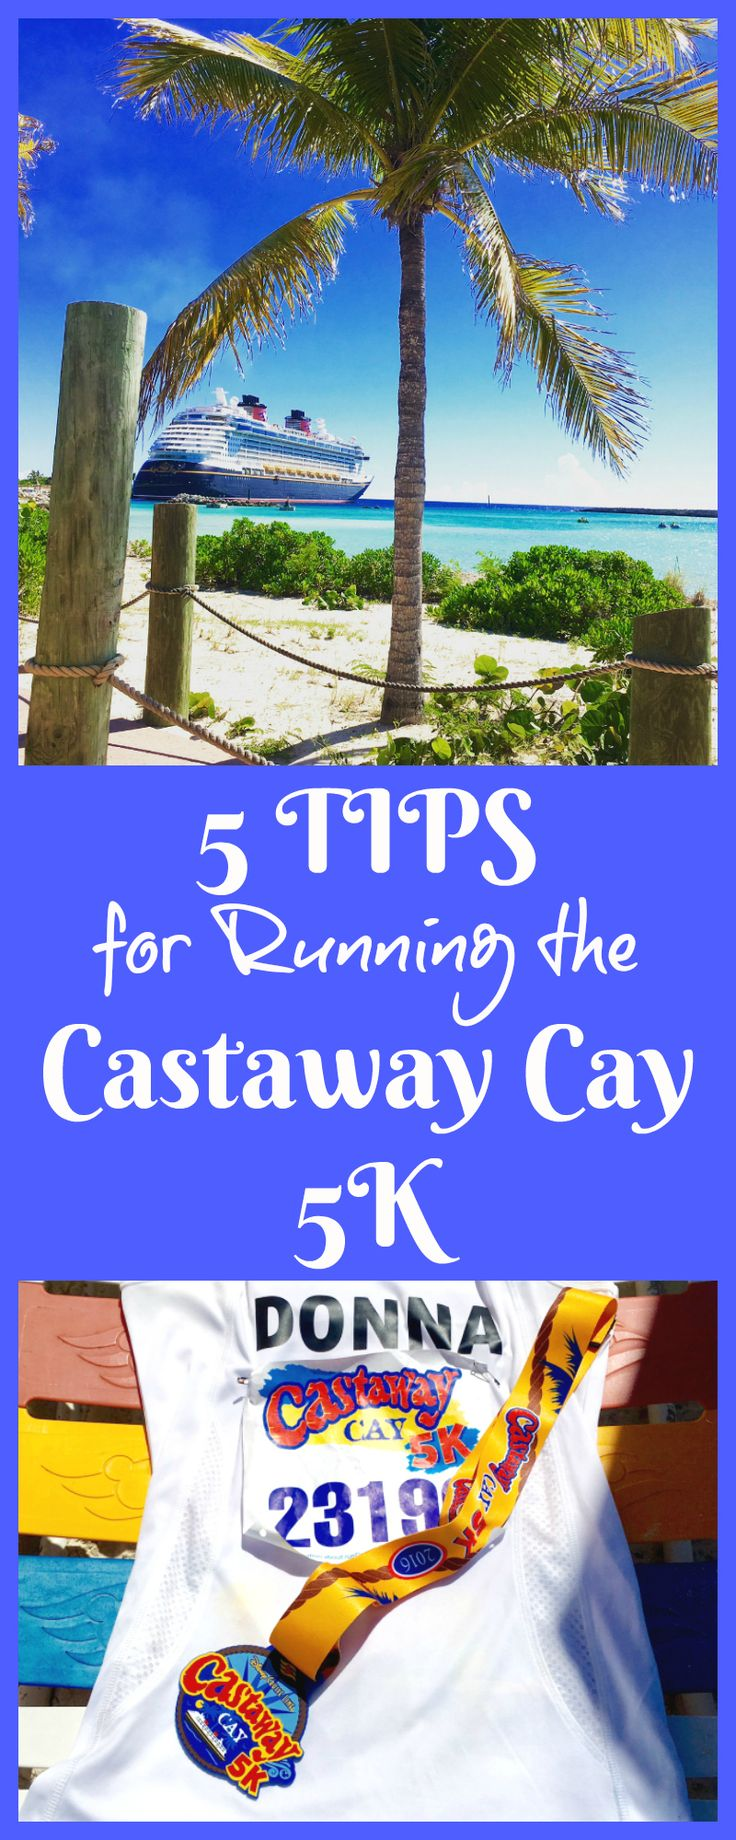 Top 5 Tips for Running the Castaway Cay 5K | Bahamas | Disney Cruise Line | runDisney